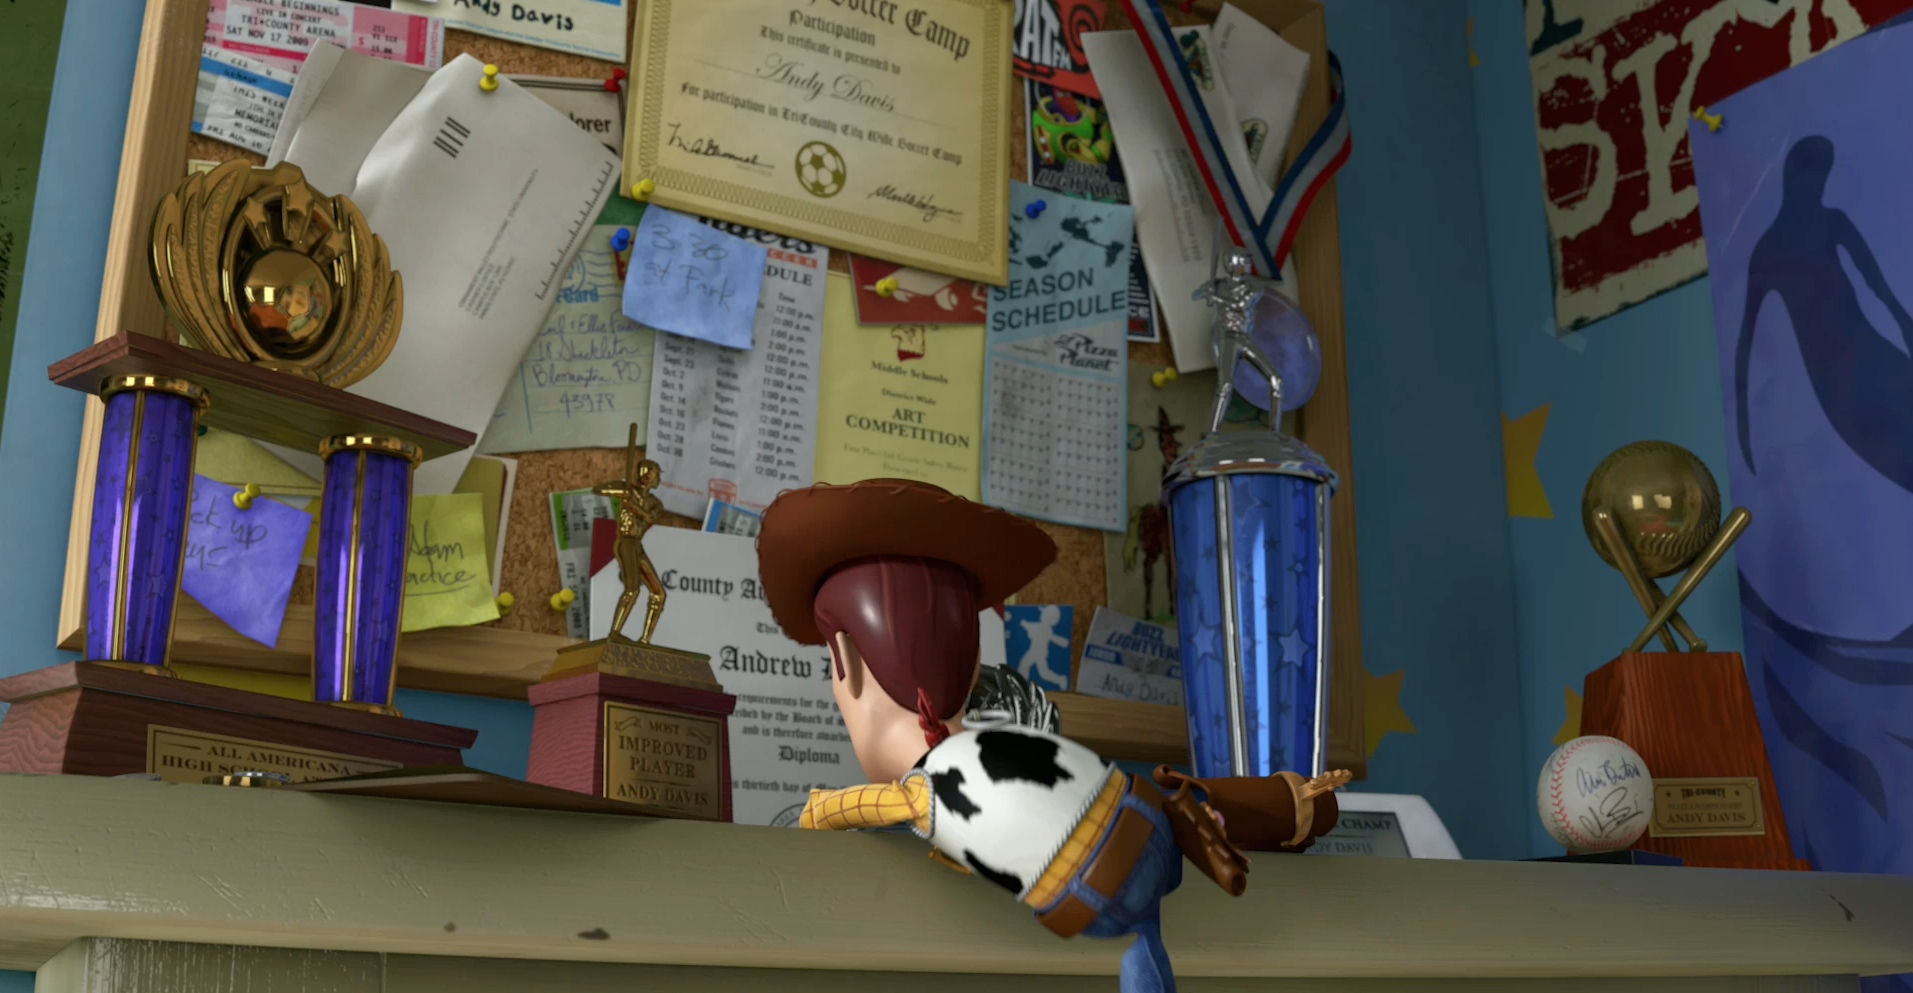 Toy Story's Andy was pen pals with Carl and Ellie from Up